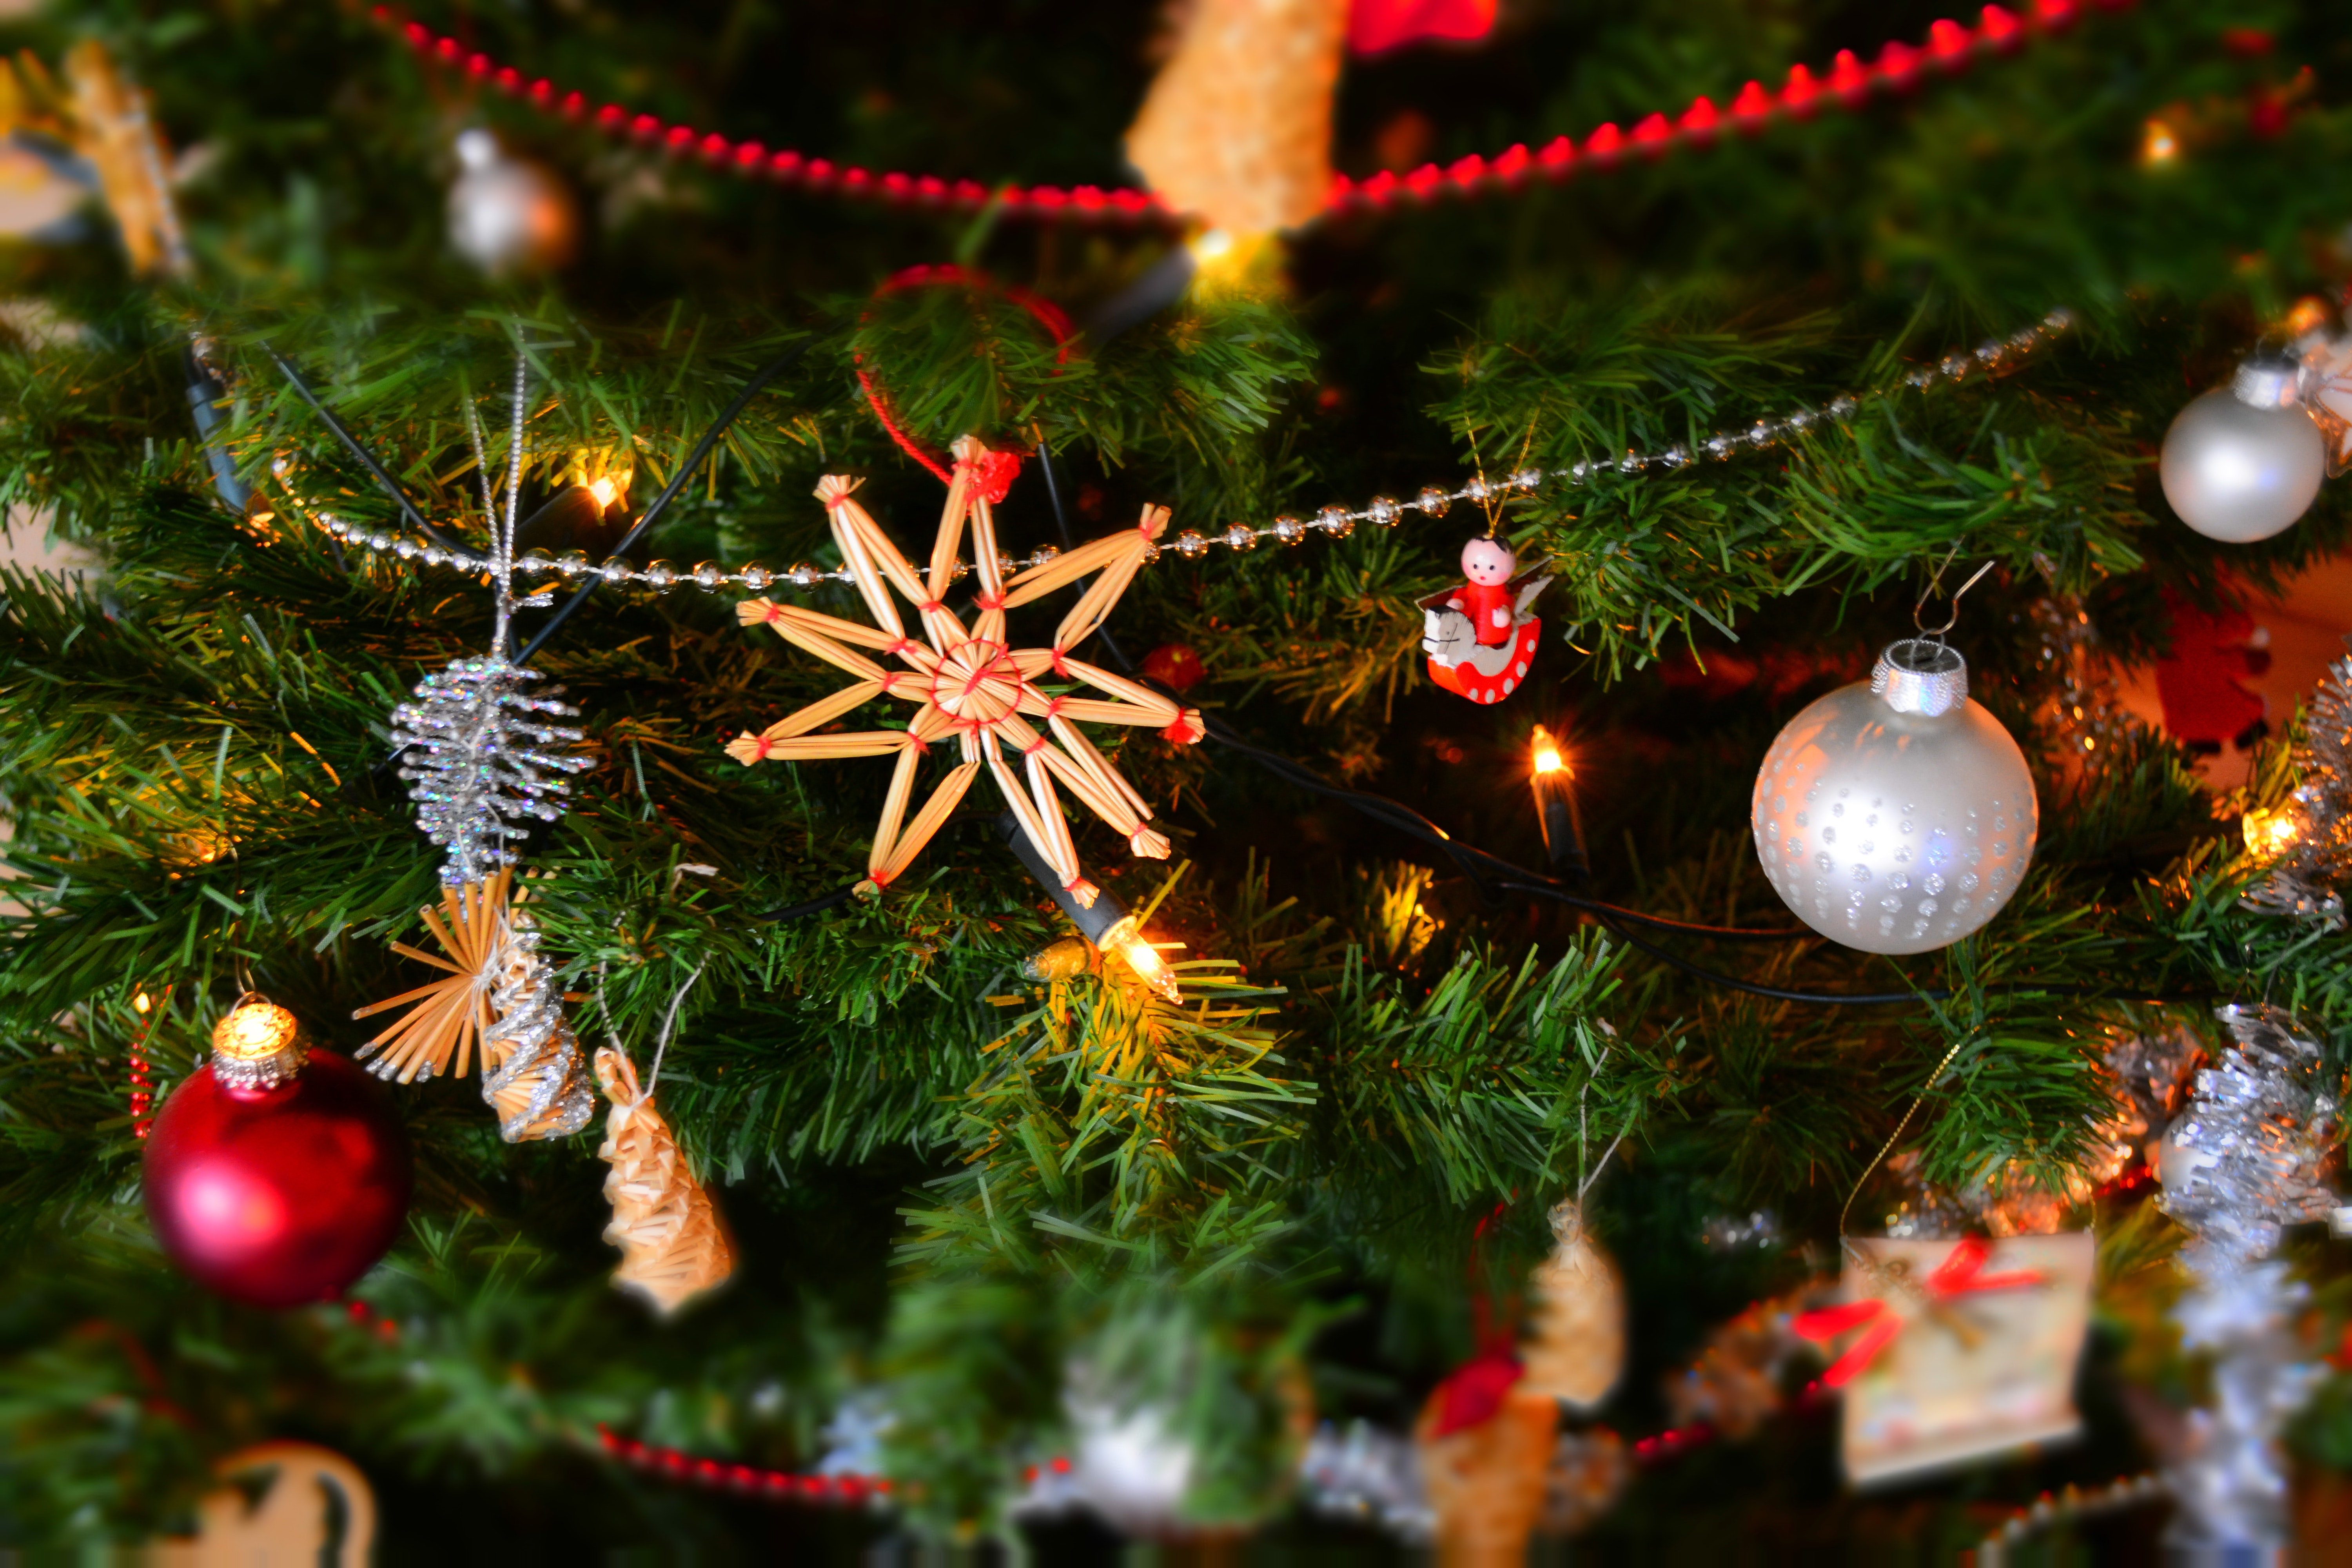 a close up image of Christmas decorations on a tree